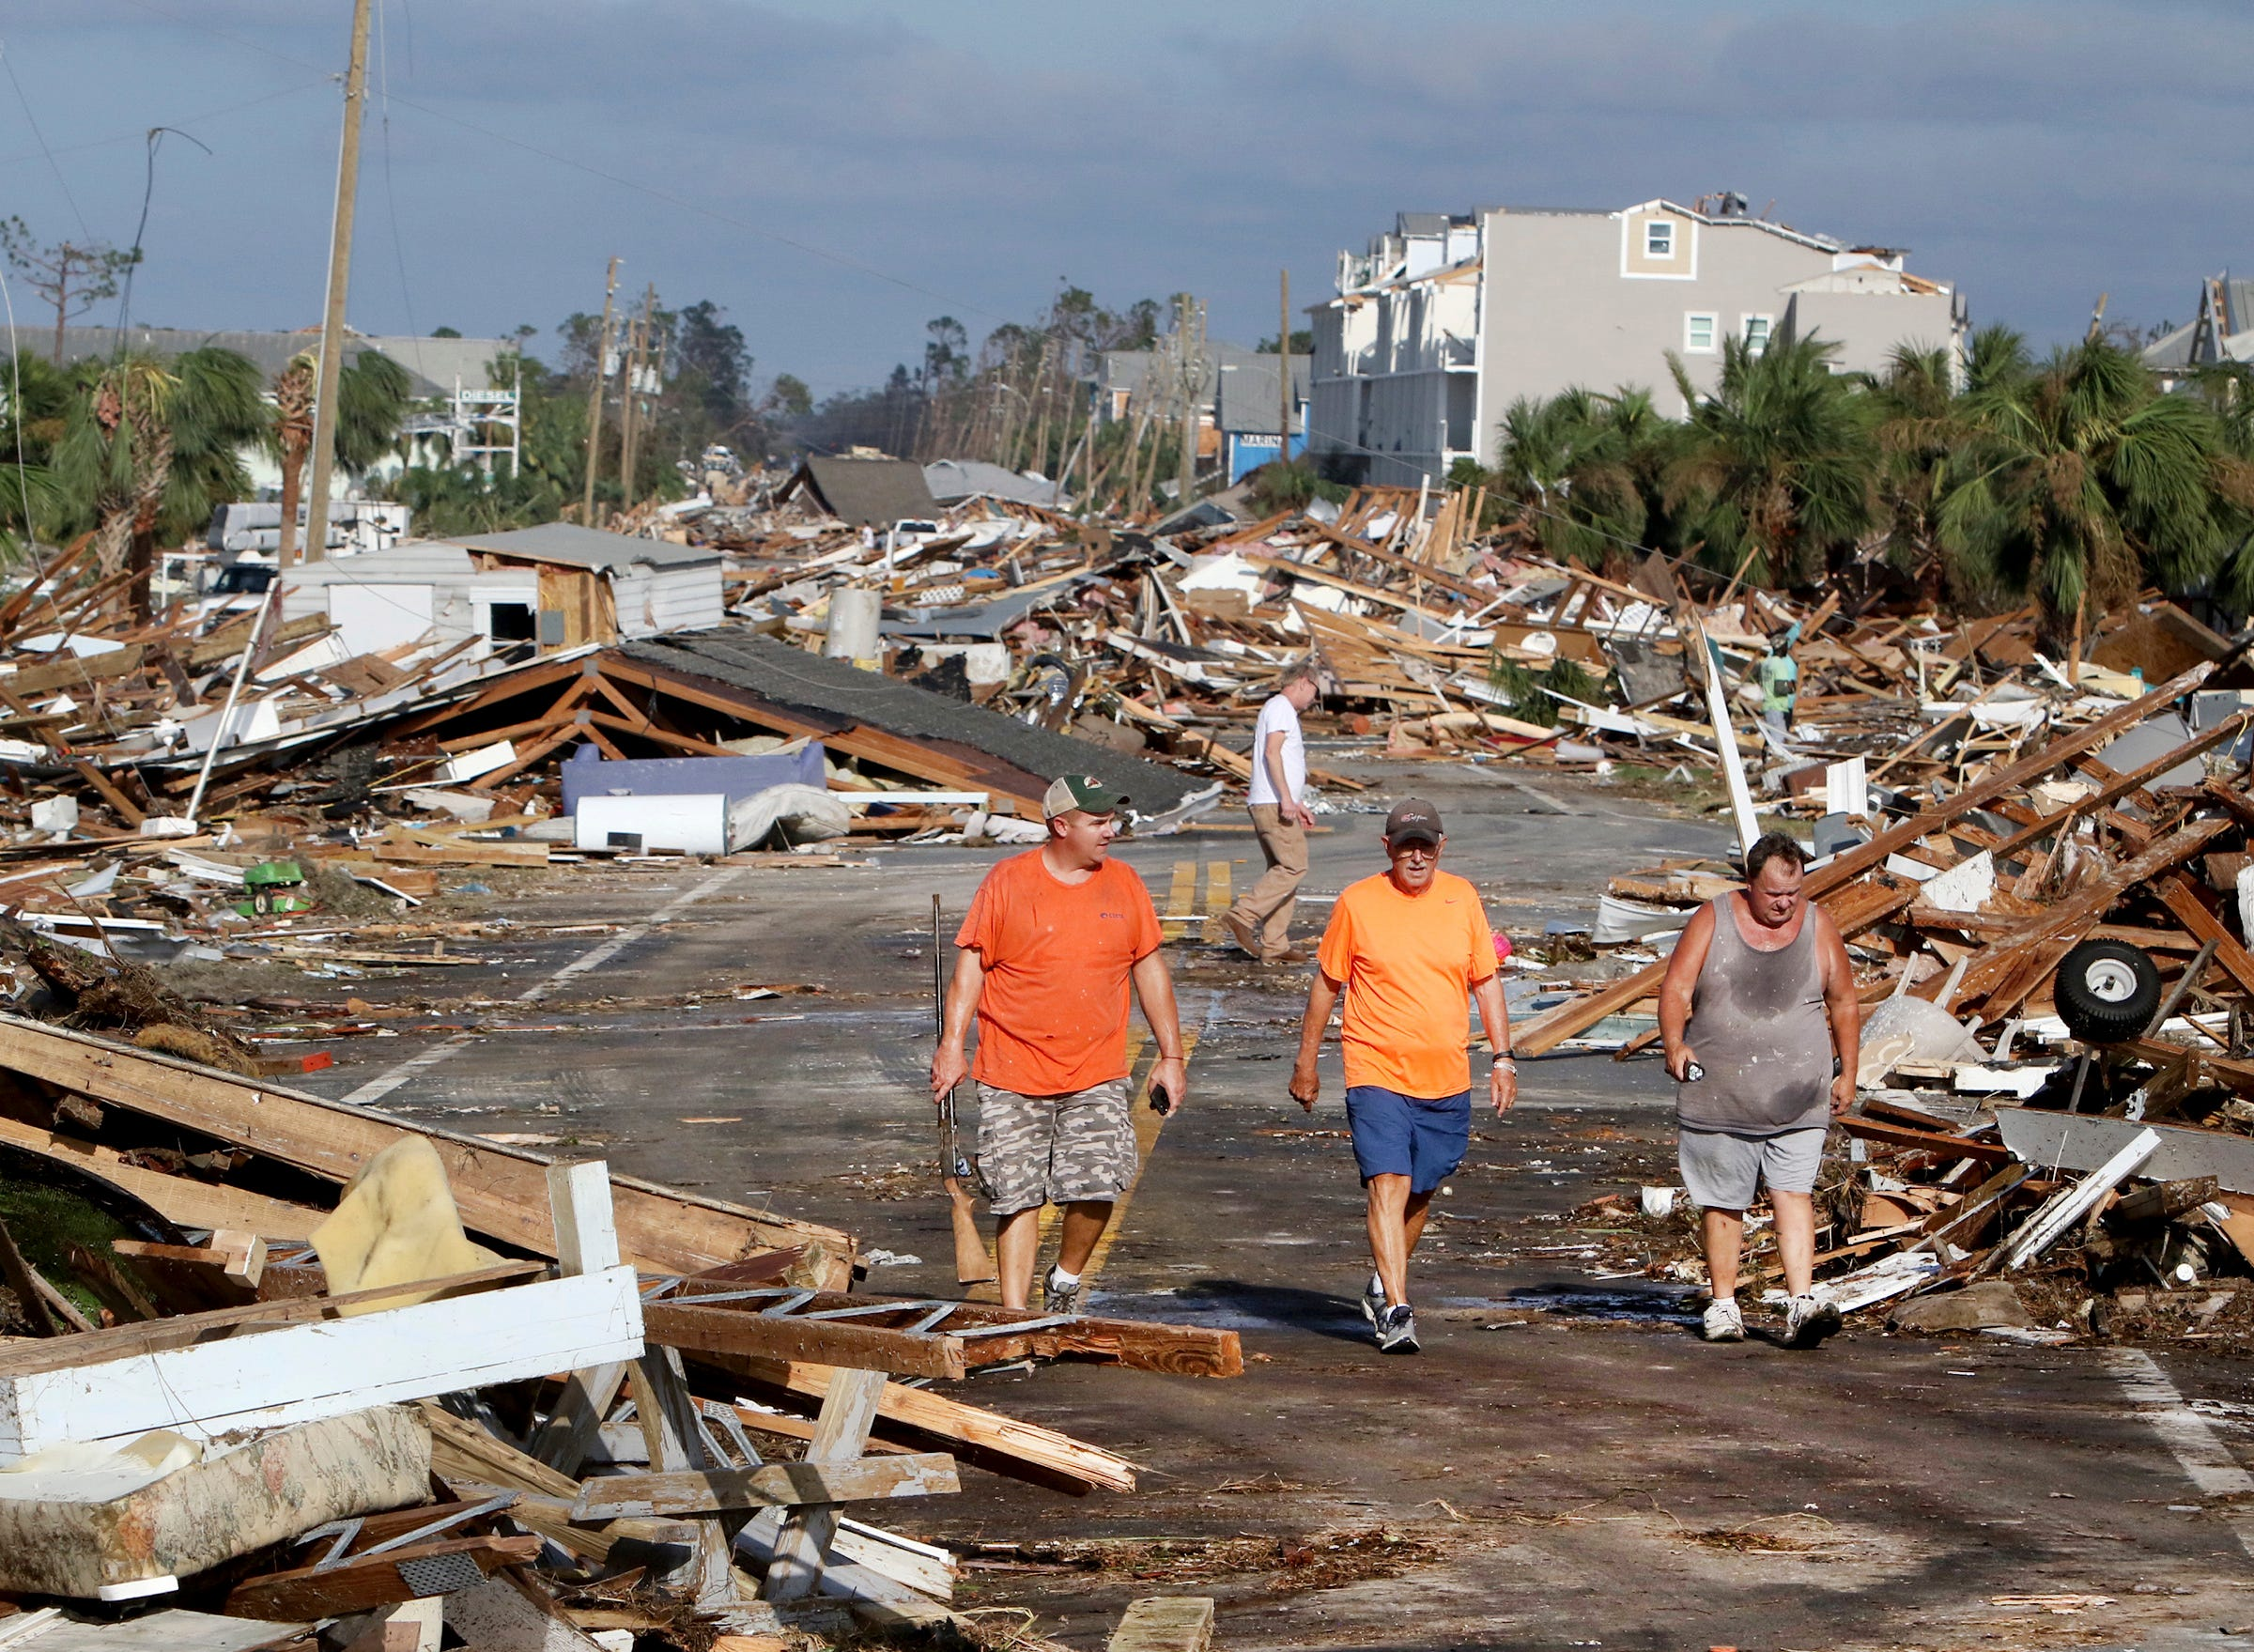 From left: Lee Cathey, 37, Al Cathey, 71, and Charles Smith, 56, survey damage in the coastal township of Mexico Beach, Fla., population 1200, which lay devastated on Thursday, Oct 11, 2018, after Hurricane Michael made landfall on Wednesday in the Florida Panhandle. Brock said he stayed in the city to ride out the storm.